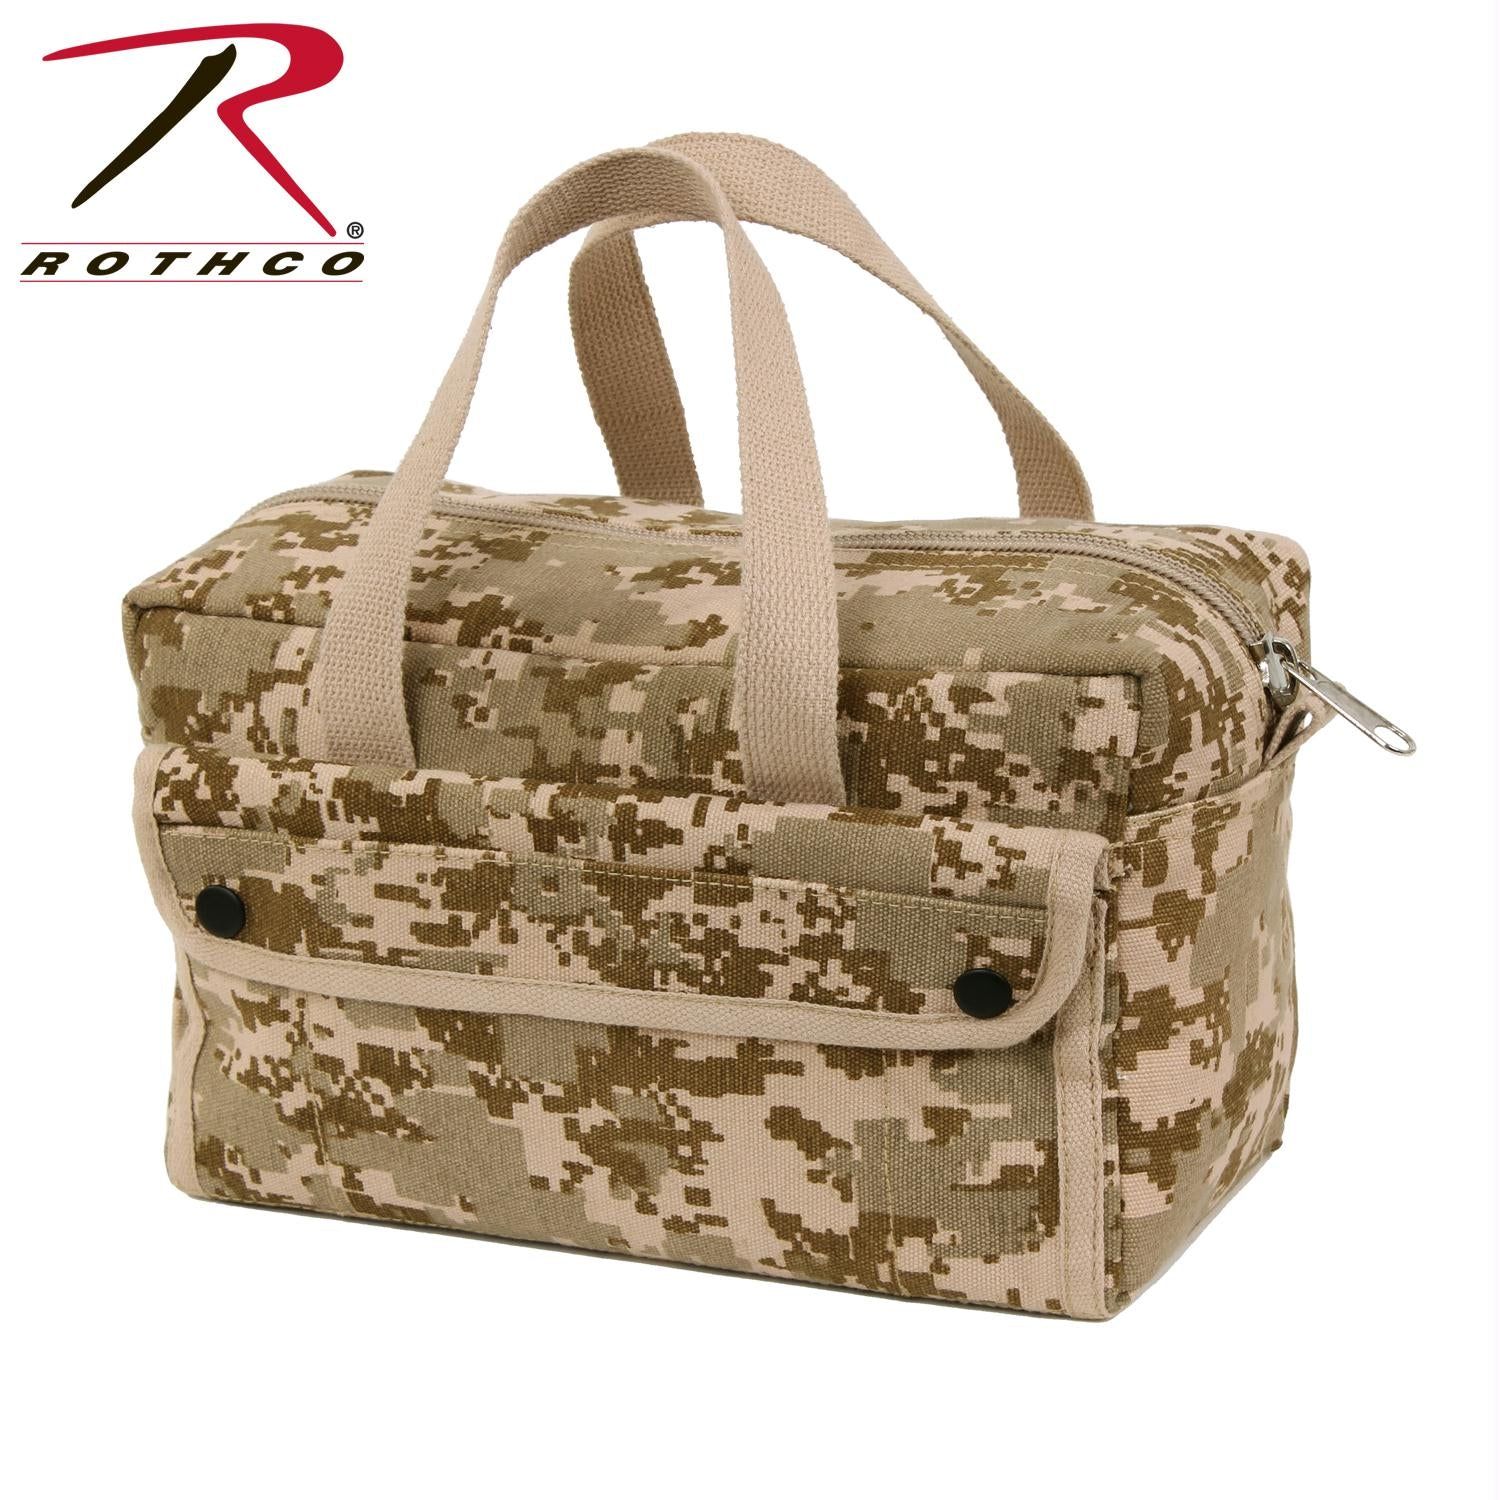 Rothco G.I. Type Mechanics Tool Bags - Desert Digital Camo